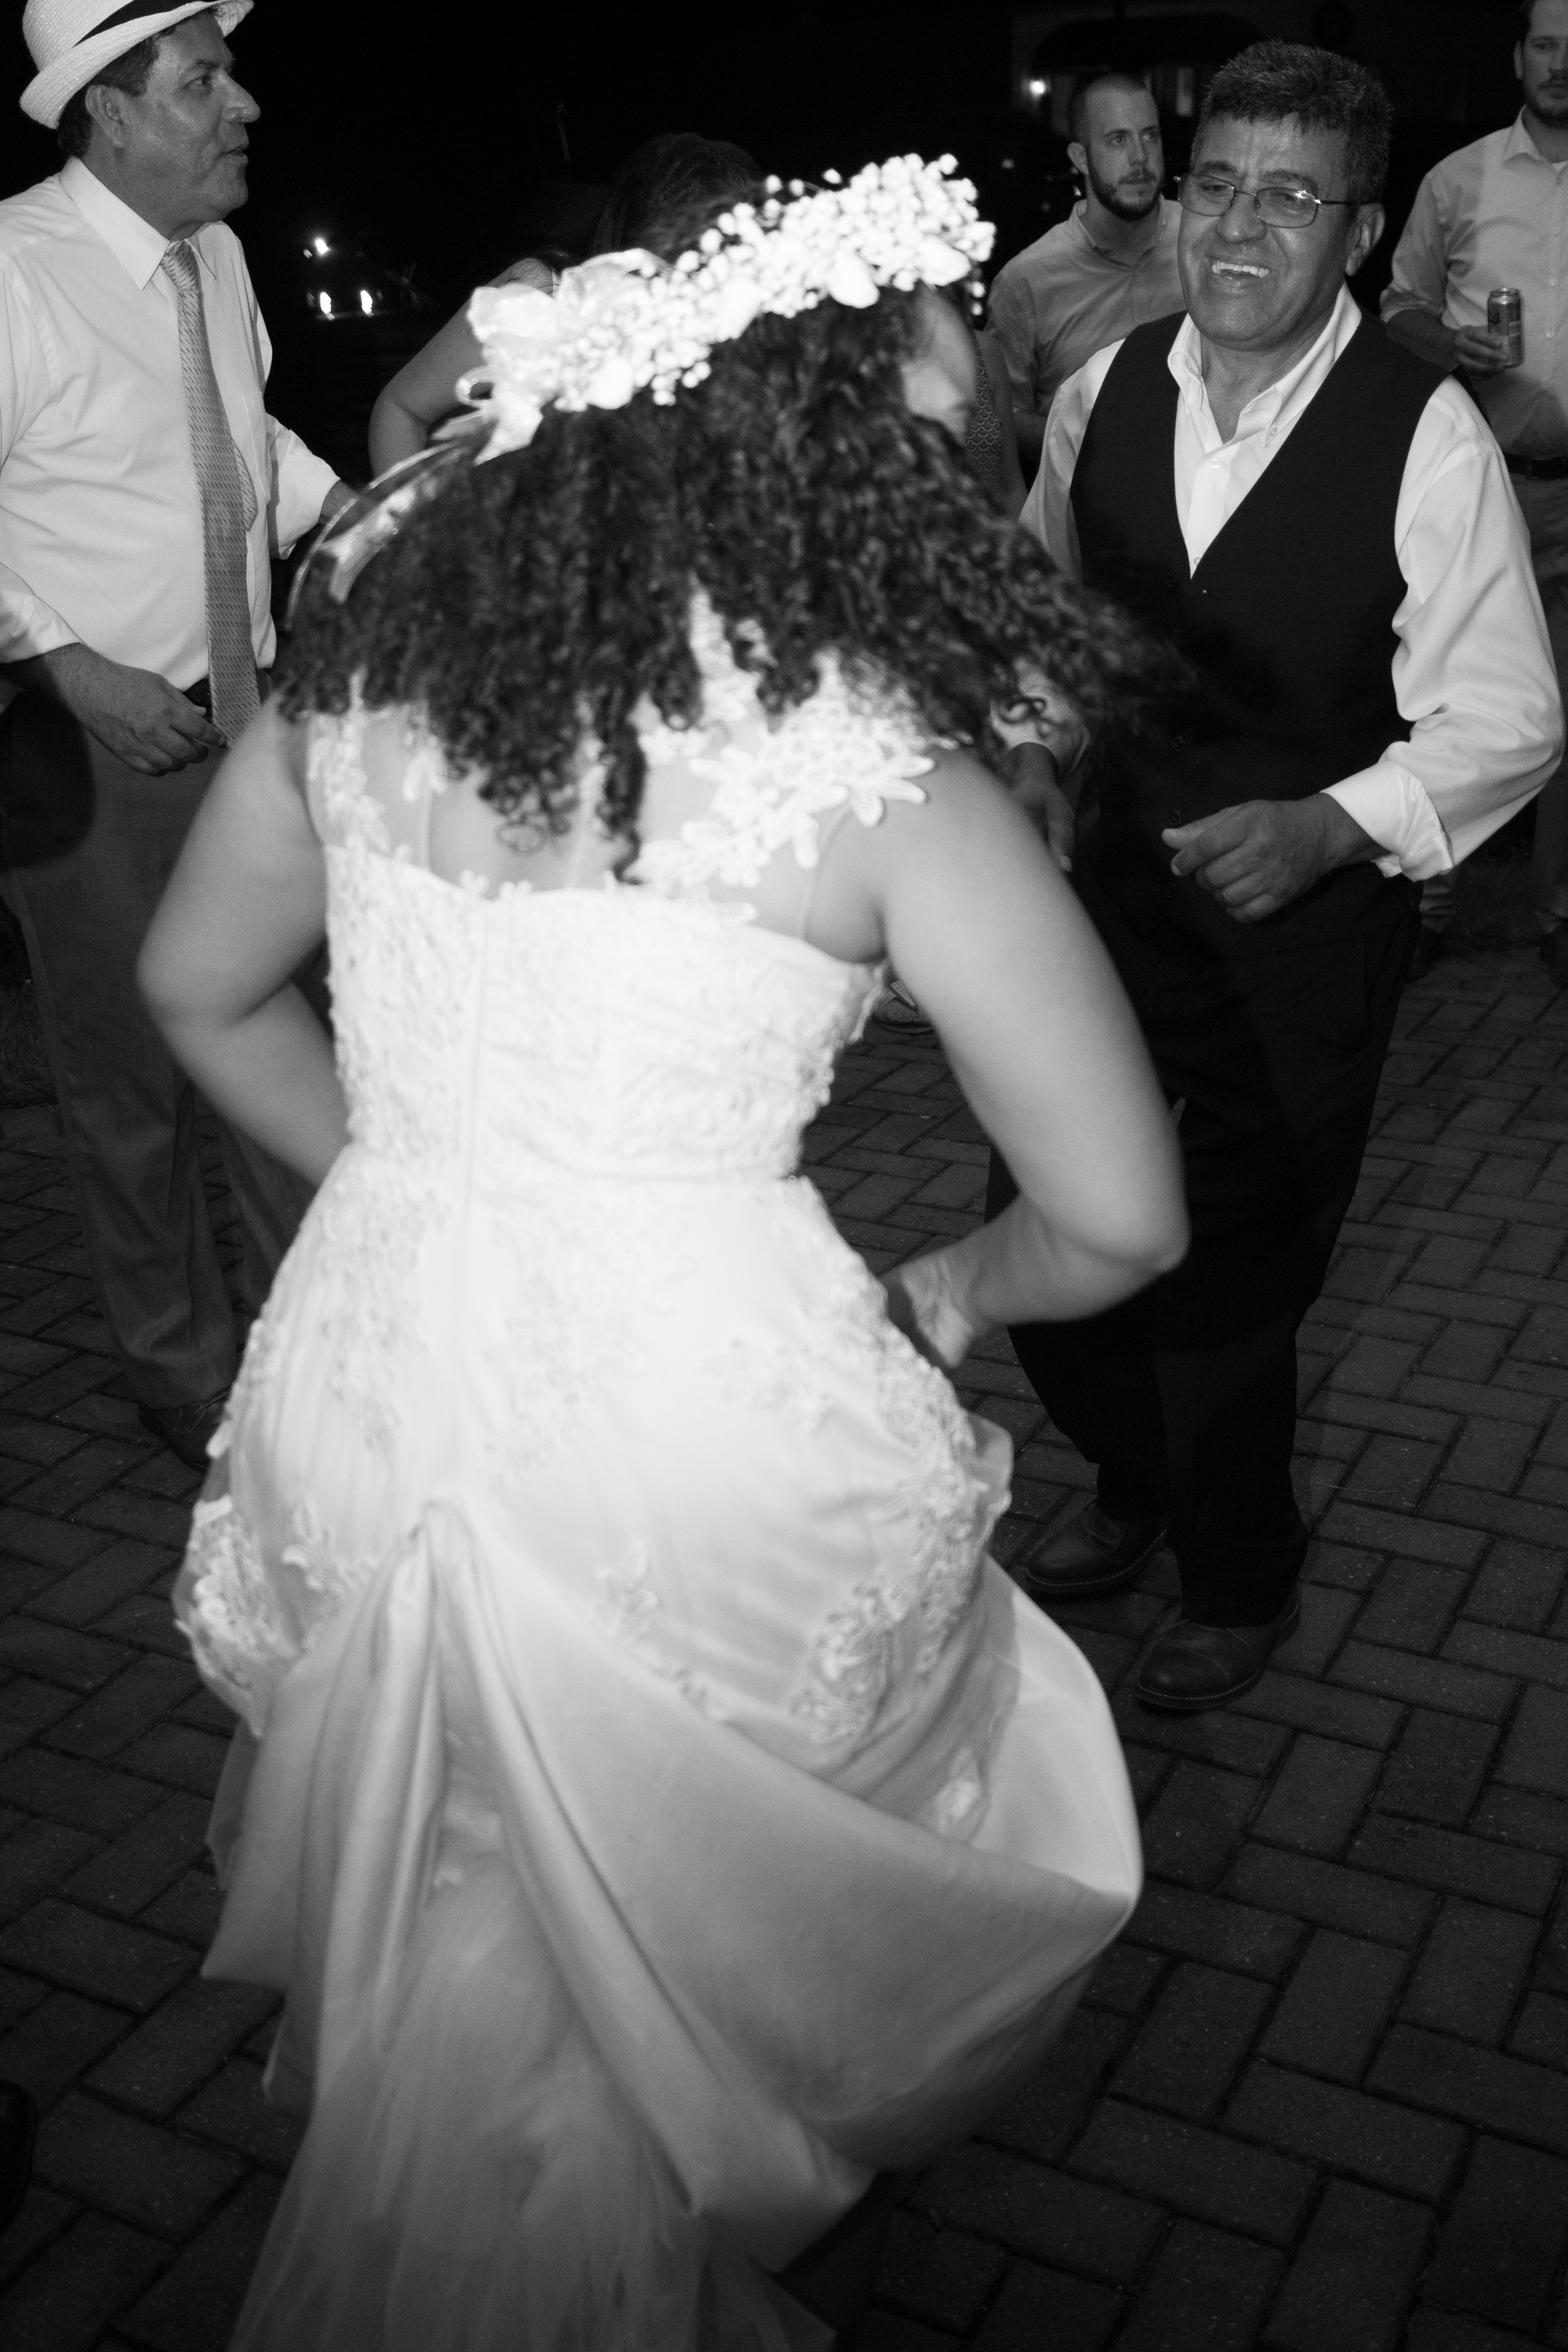 Cathy and Chris Wedding Photos - Black and White - by Brittany Castillo Meadow Portraits (20 of 21).jpg